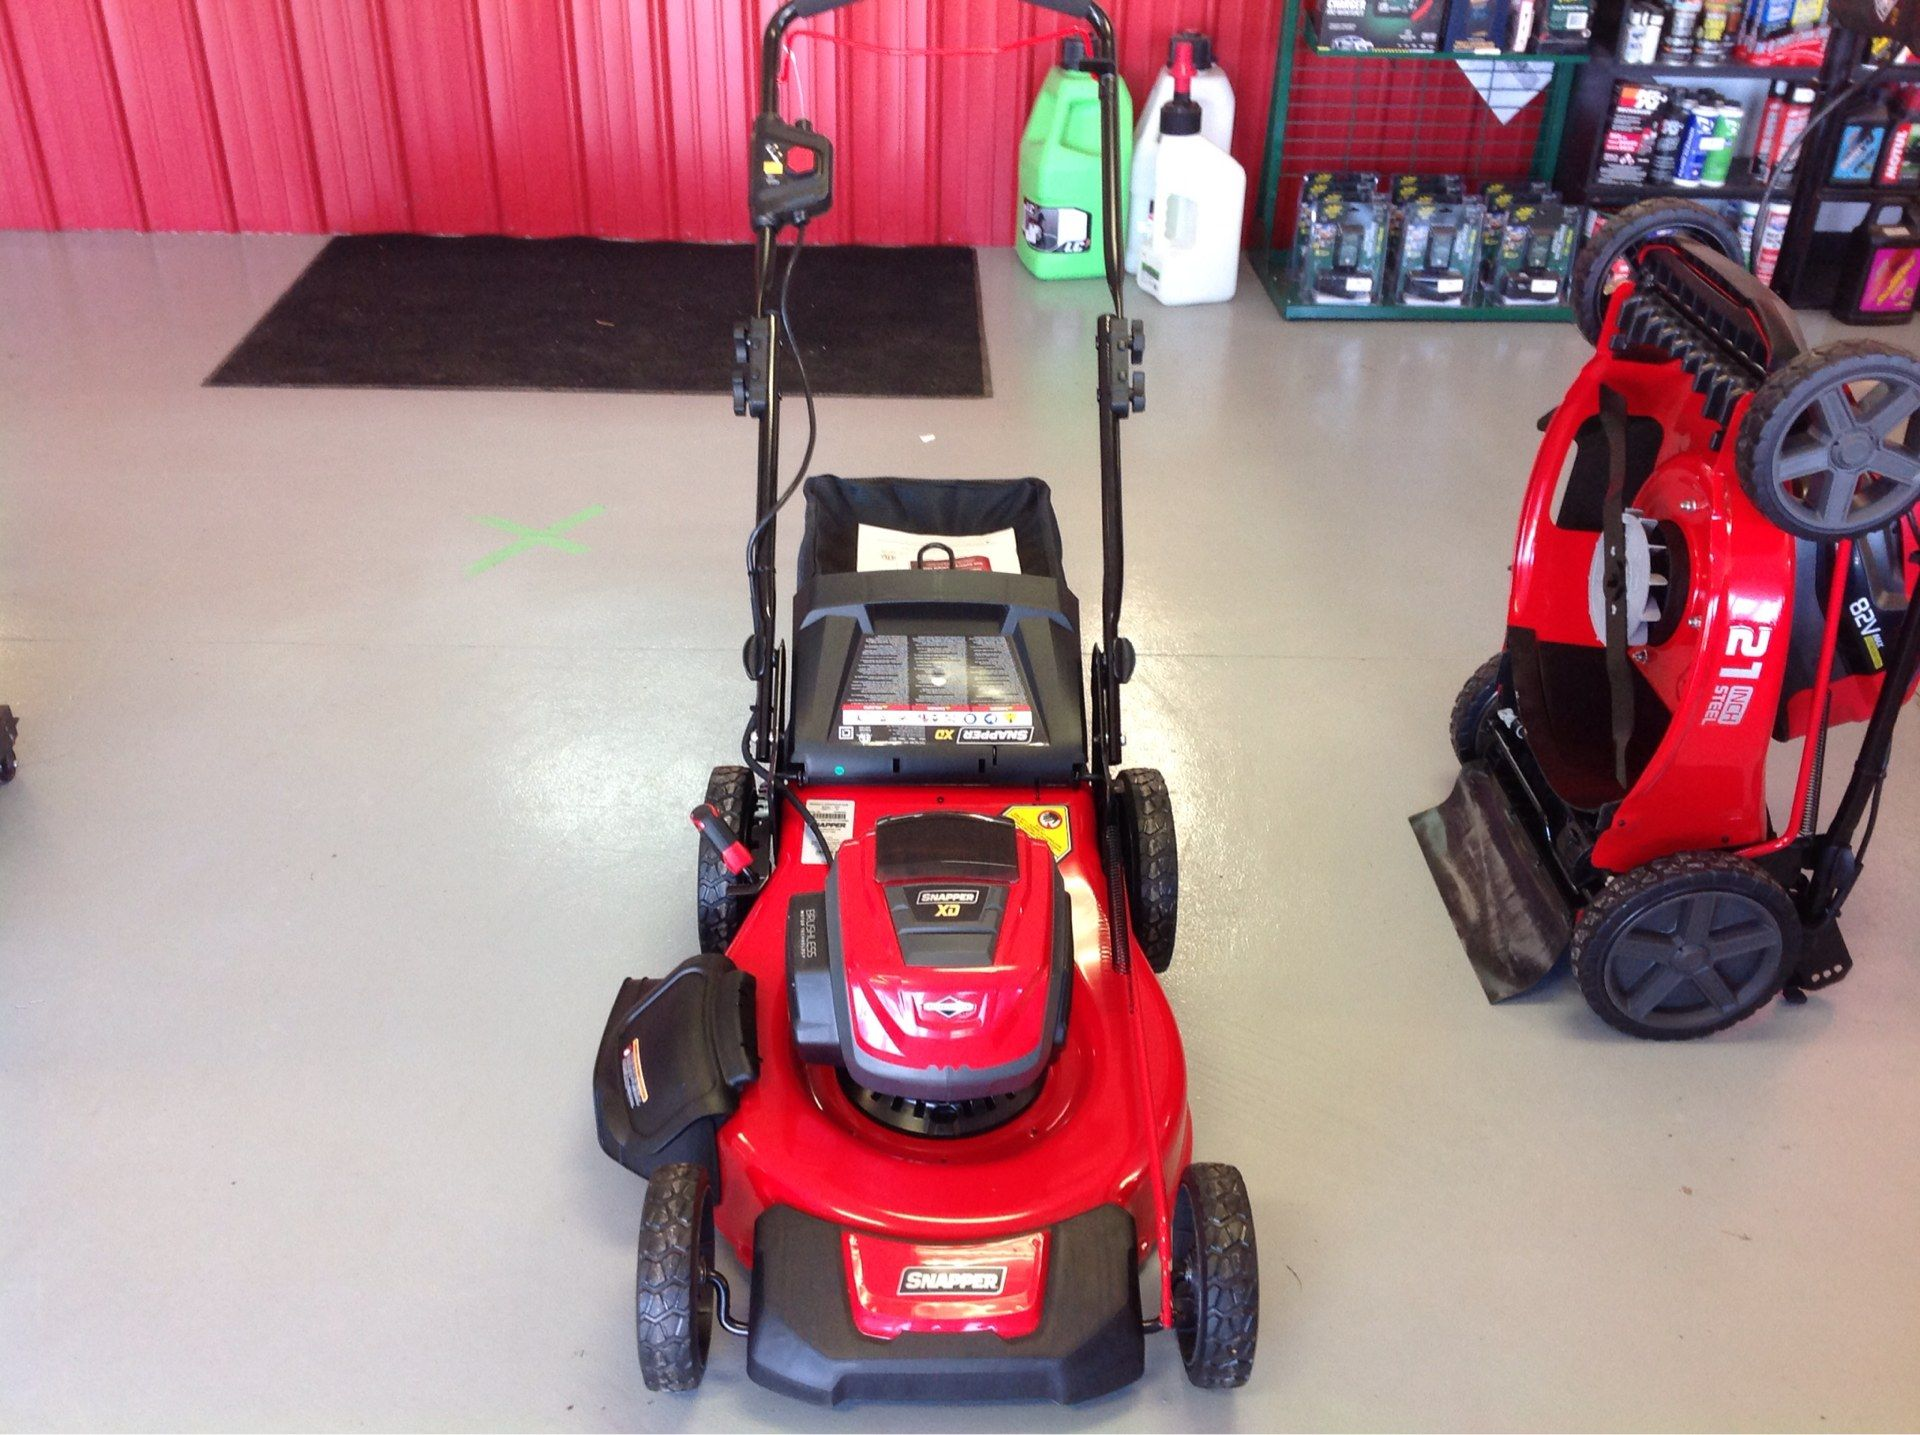 Snapper SXDWM82 21 in. 82V Max Lithium-Ion Cordless Push in Lafayette, Indiana - Photo 2